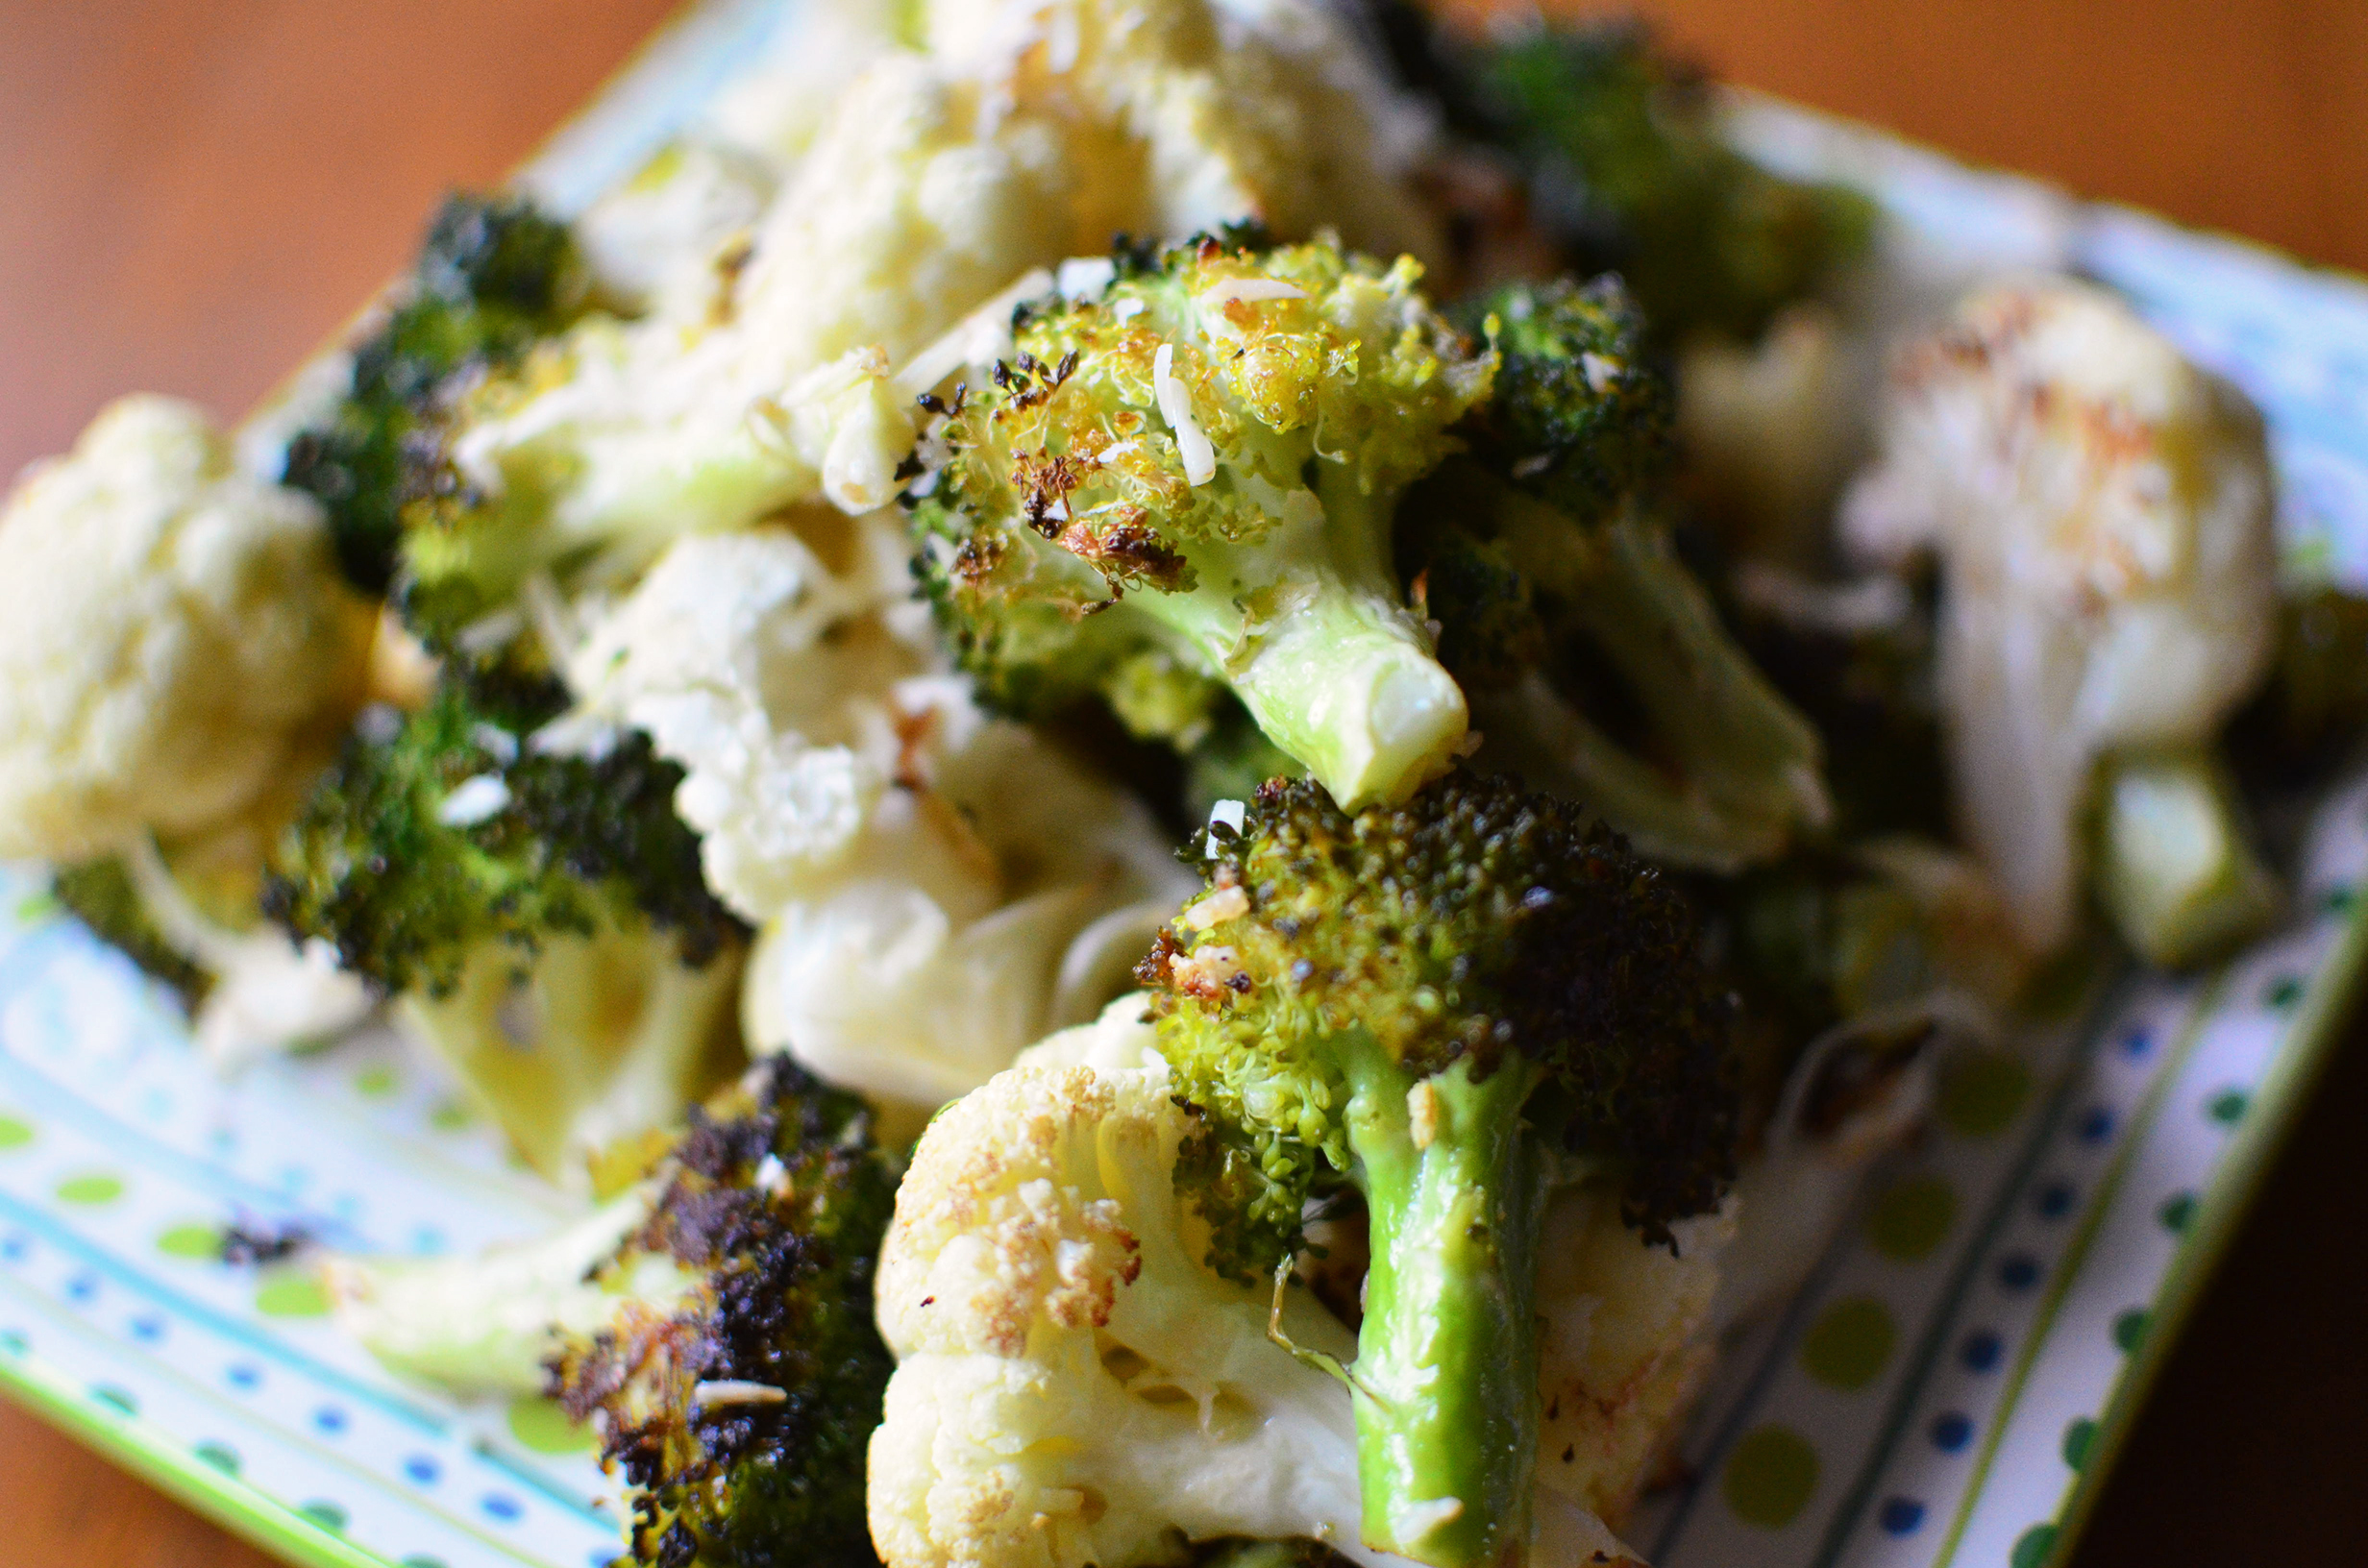 Parmesan Roasted Broccoli and Cauliflower side